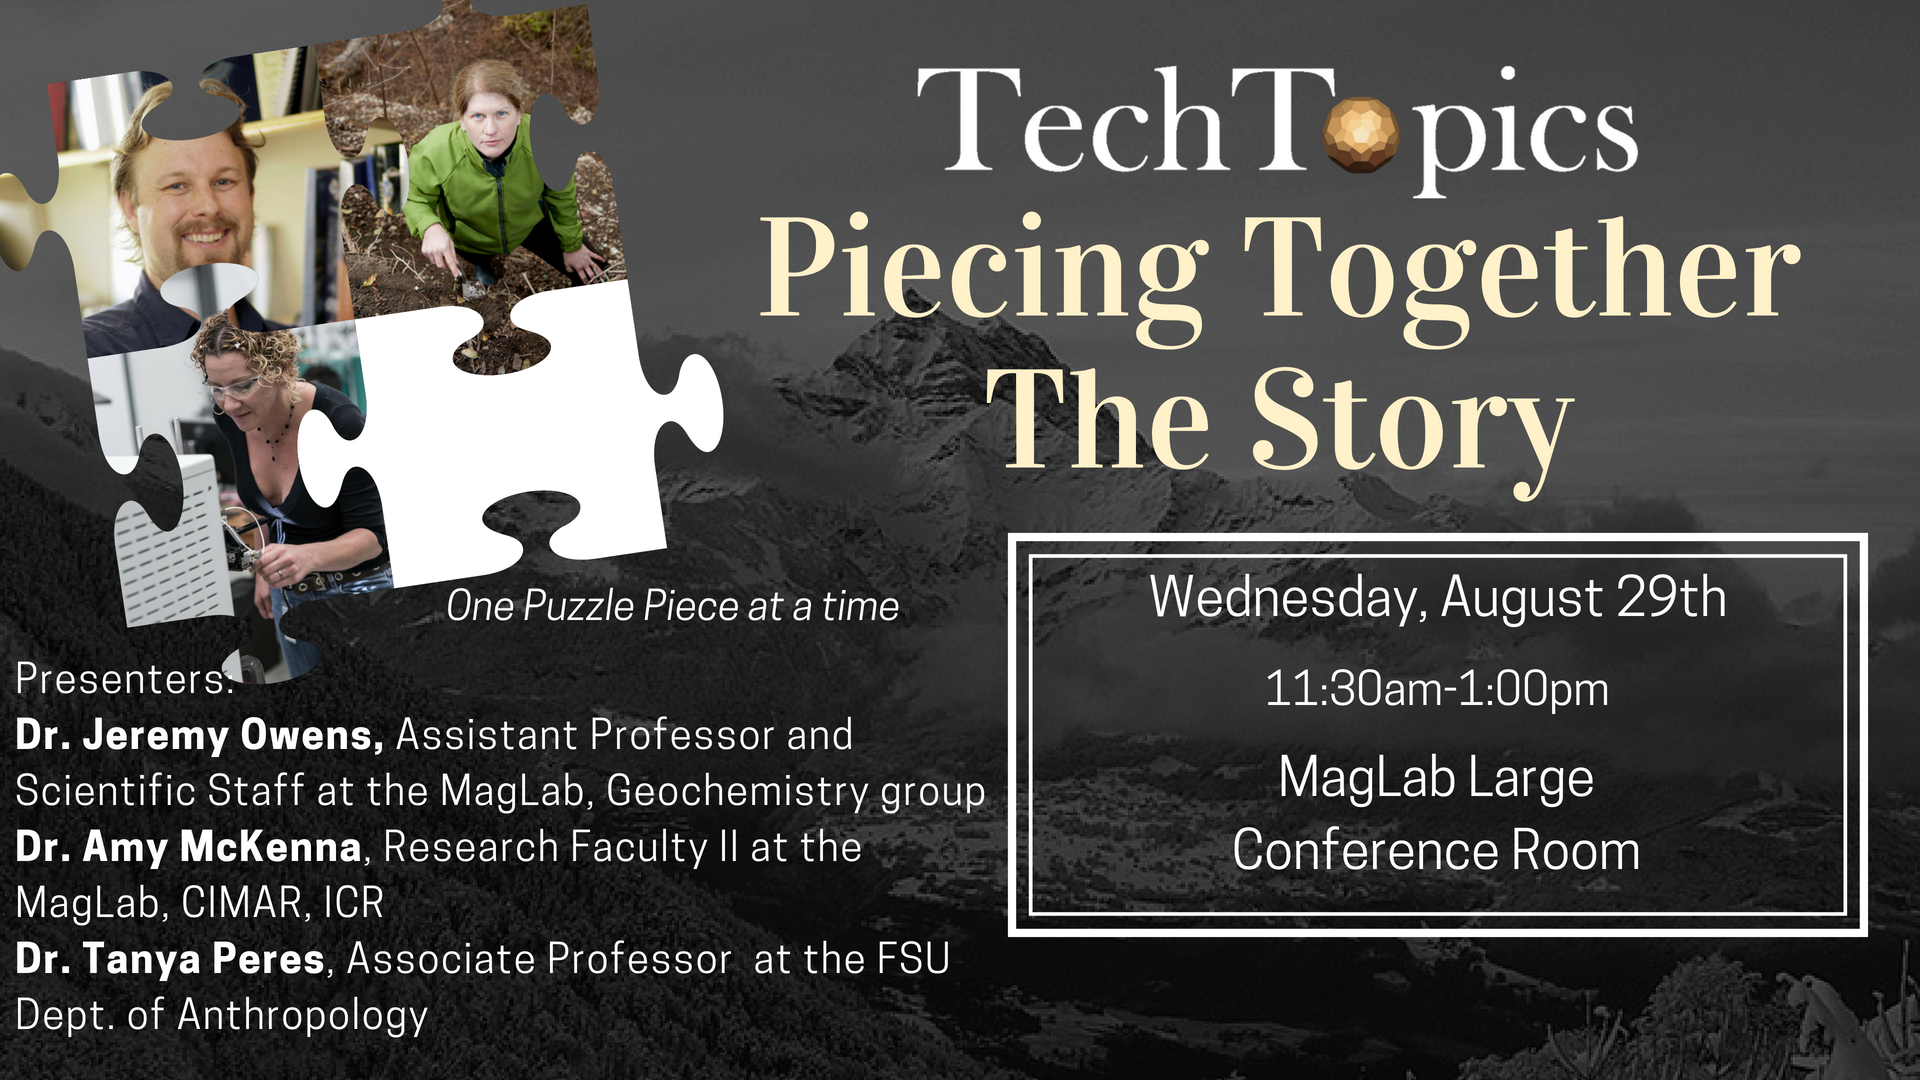 Piecing together the story- Innovation Park of Tallahassee August 2018 TechTopics